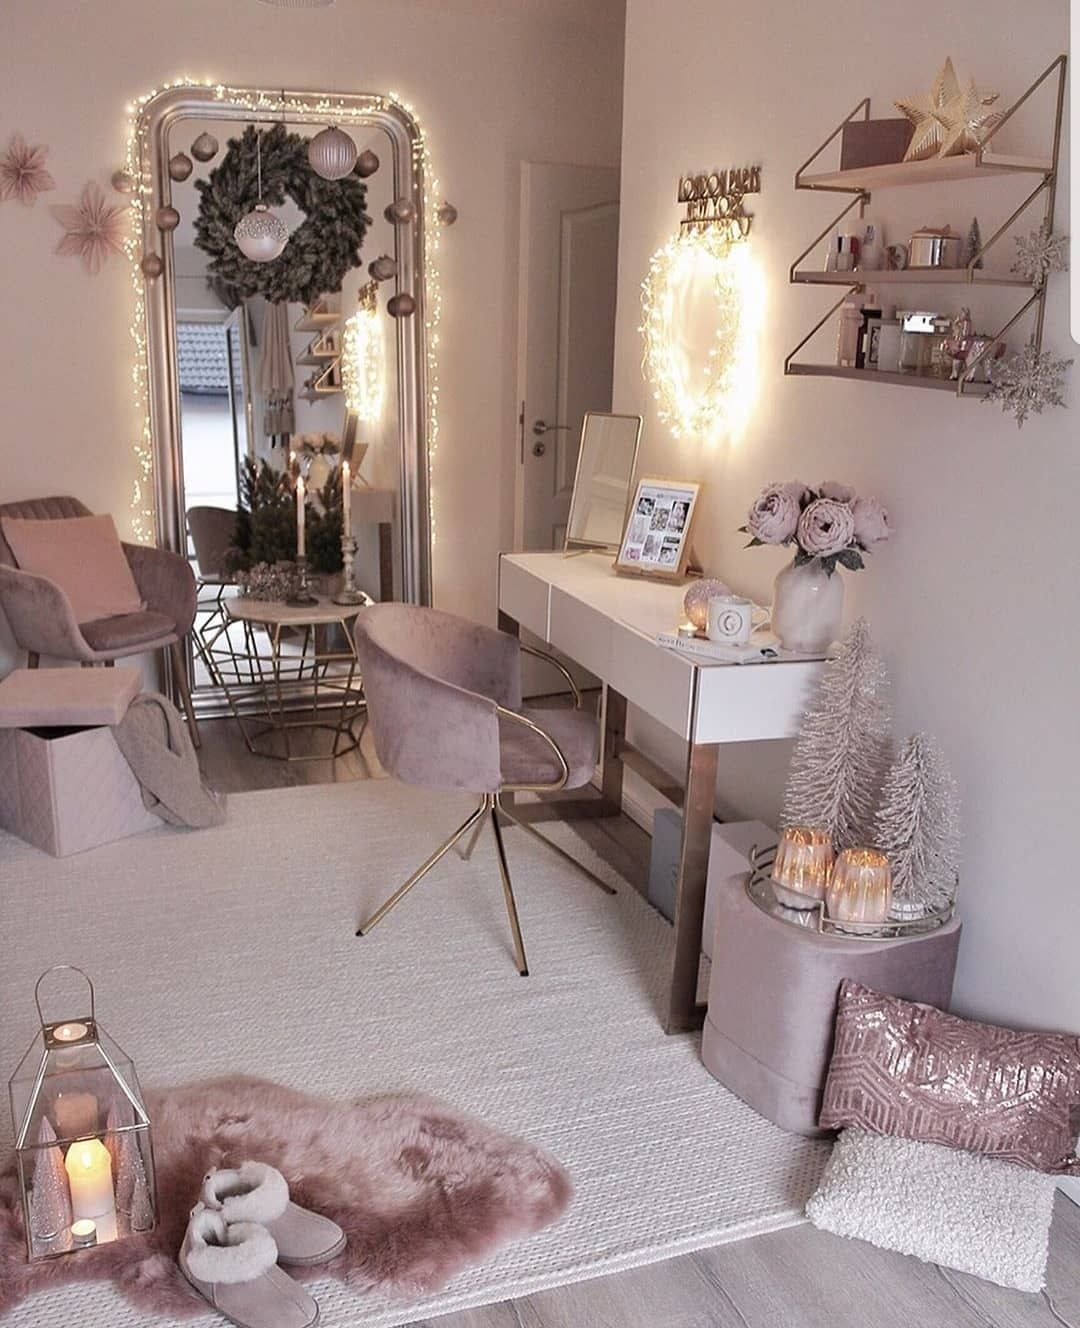 Home Decor Ideas   Give Your House a New Look   Chambre deco ado ...